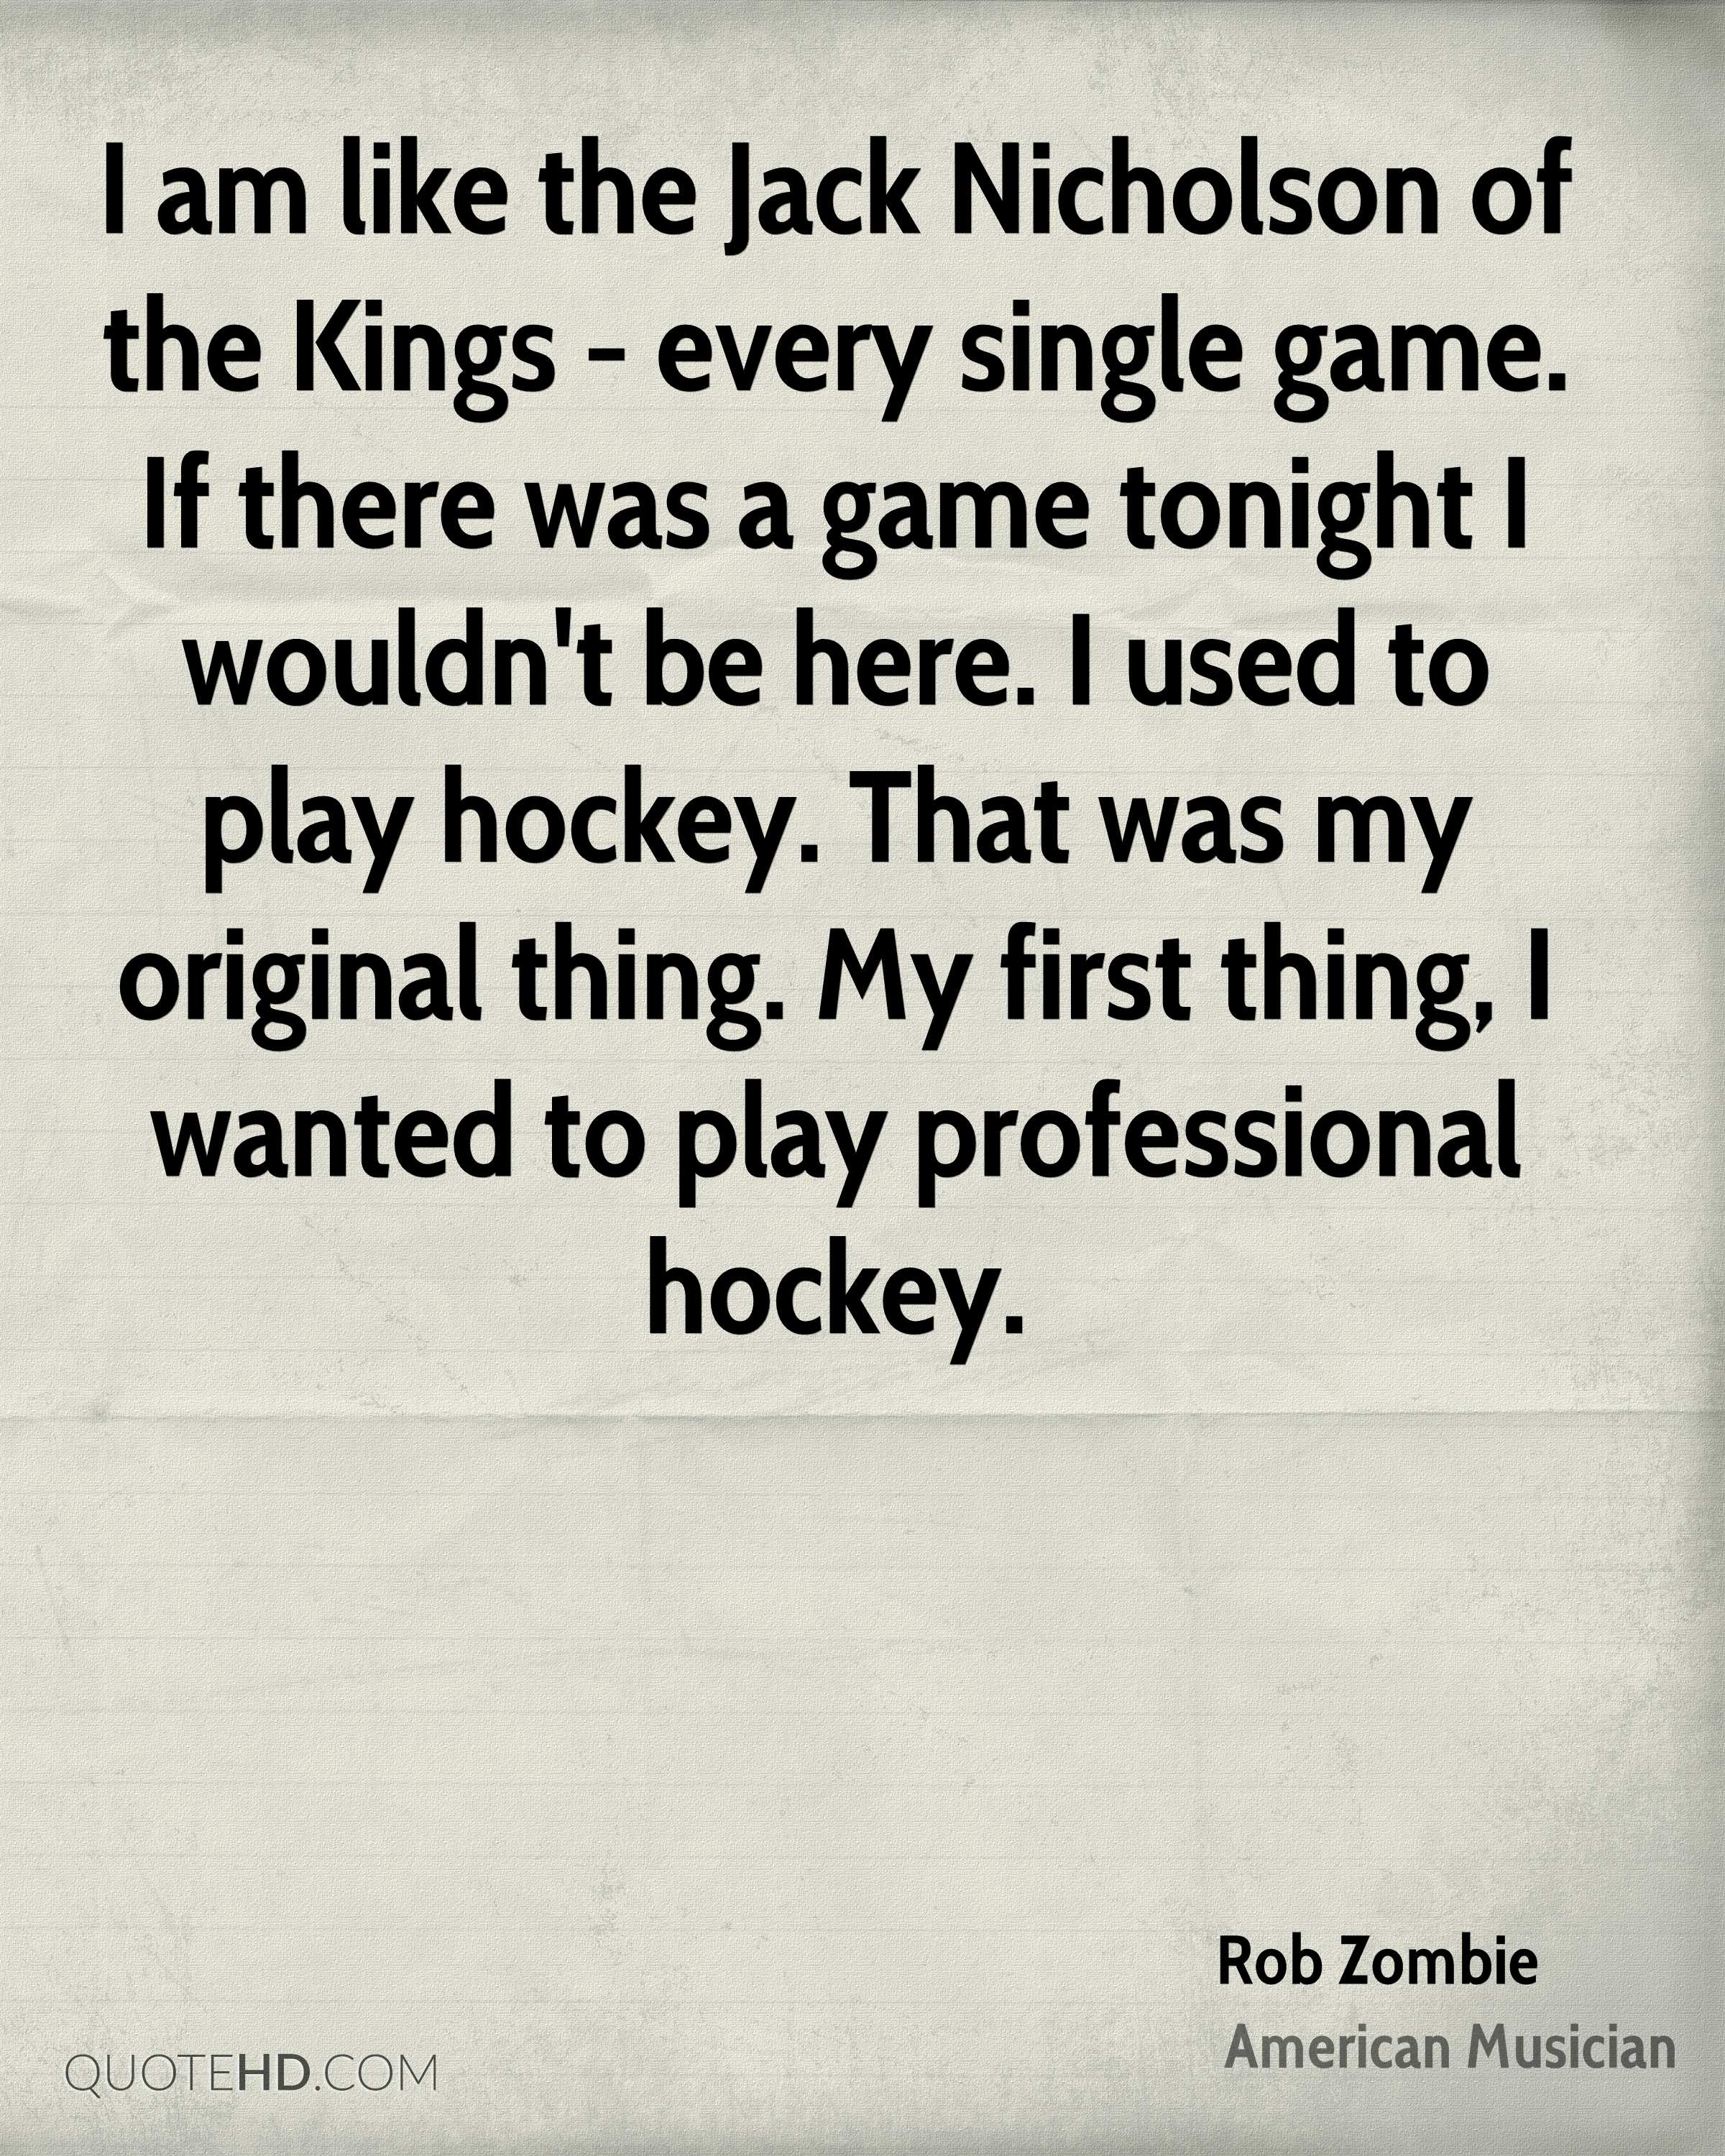 I am like the Jack Nicholson of the Kings - every single game. If there was a game tonight I wouldn't be here. I used to play hockey. That was my original thing. My first thing, I wanted to play professional hockey.